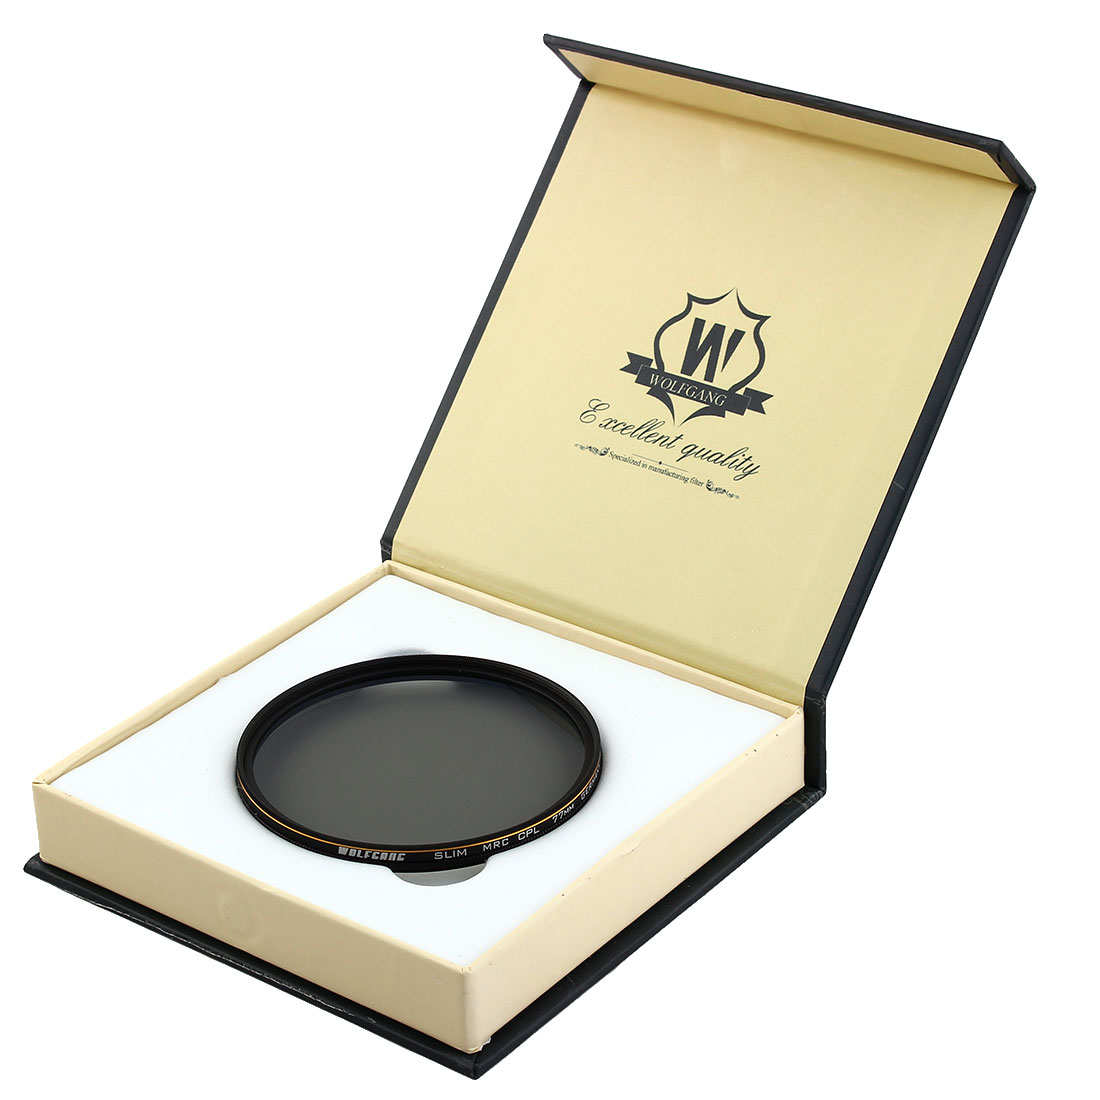 WOLFGANG Authorized Universal 77mm Multi Coated MC CPL Circular Polarizing Filter for Digital SLR Camera Lens